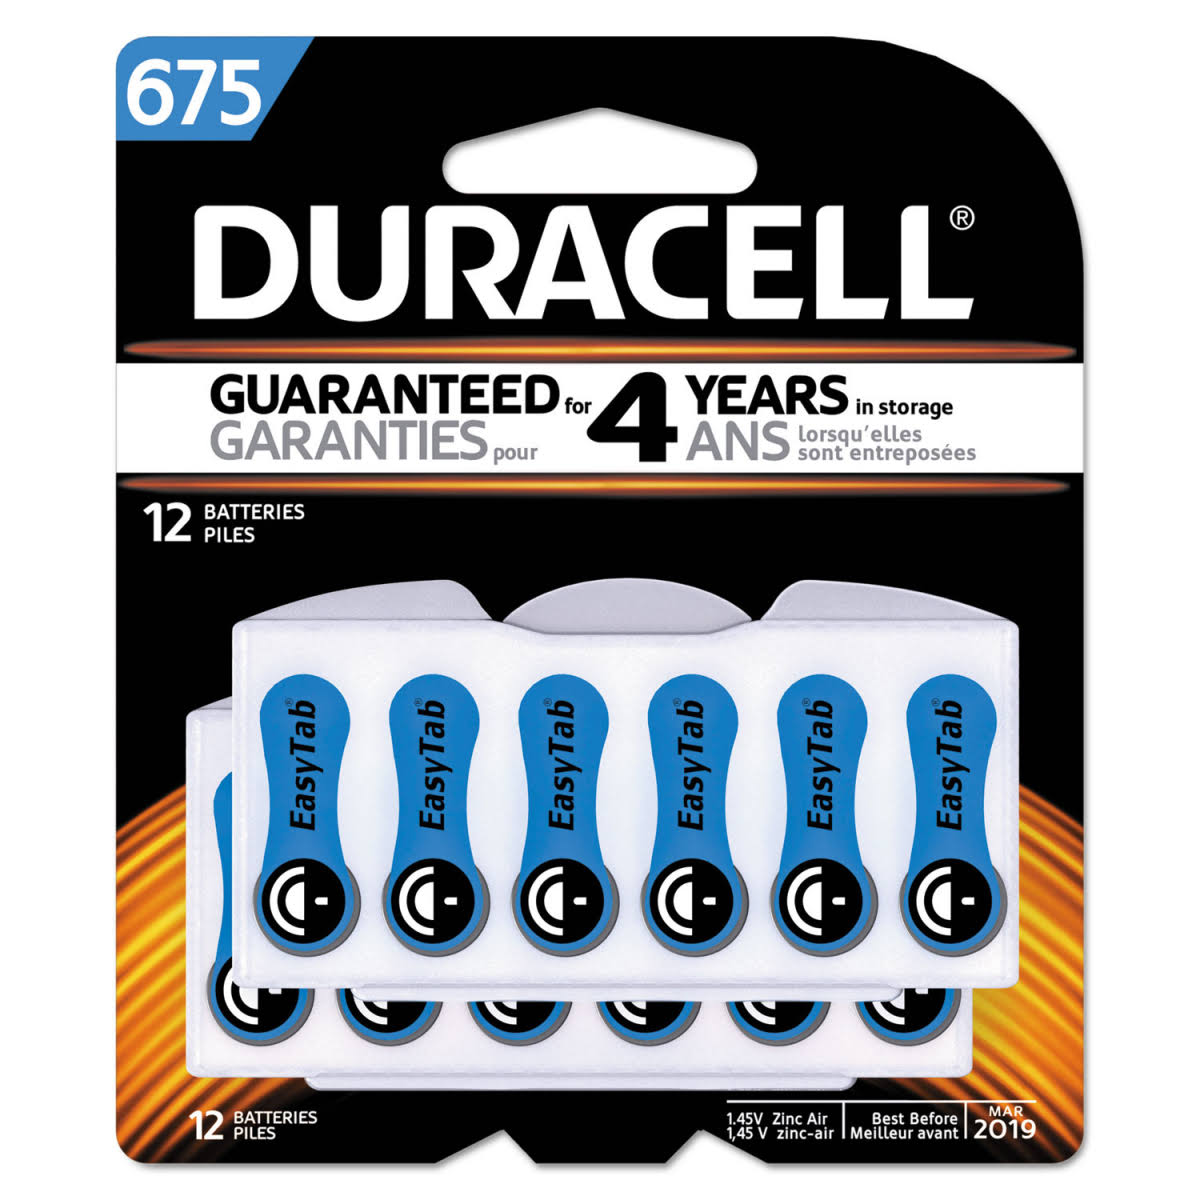 Duracell Easy Tab Hearing Aid Batteries - Size 675, 12pcs